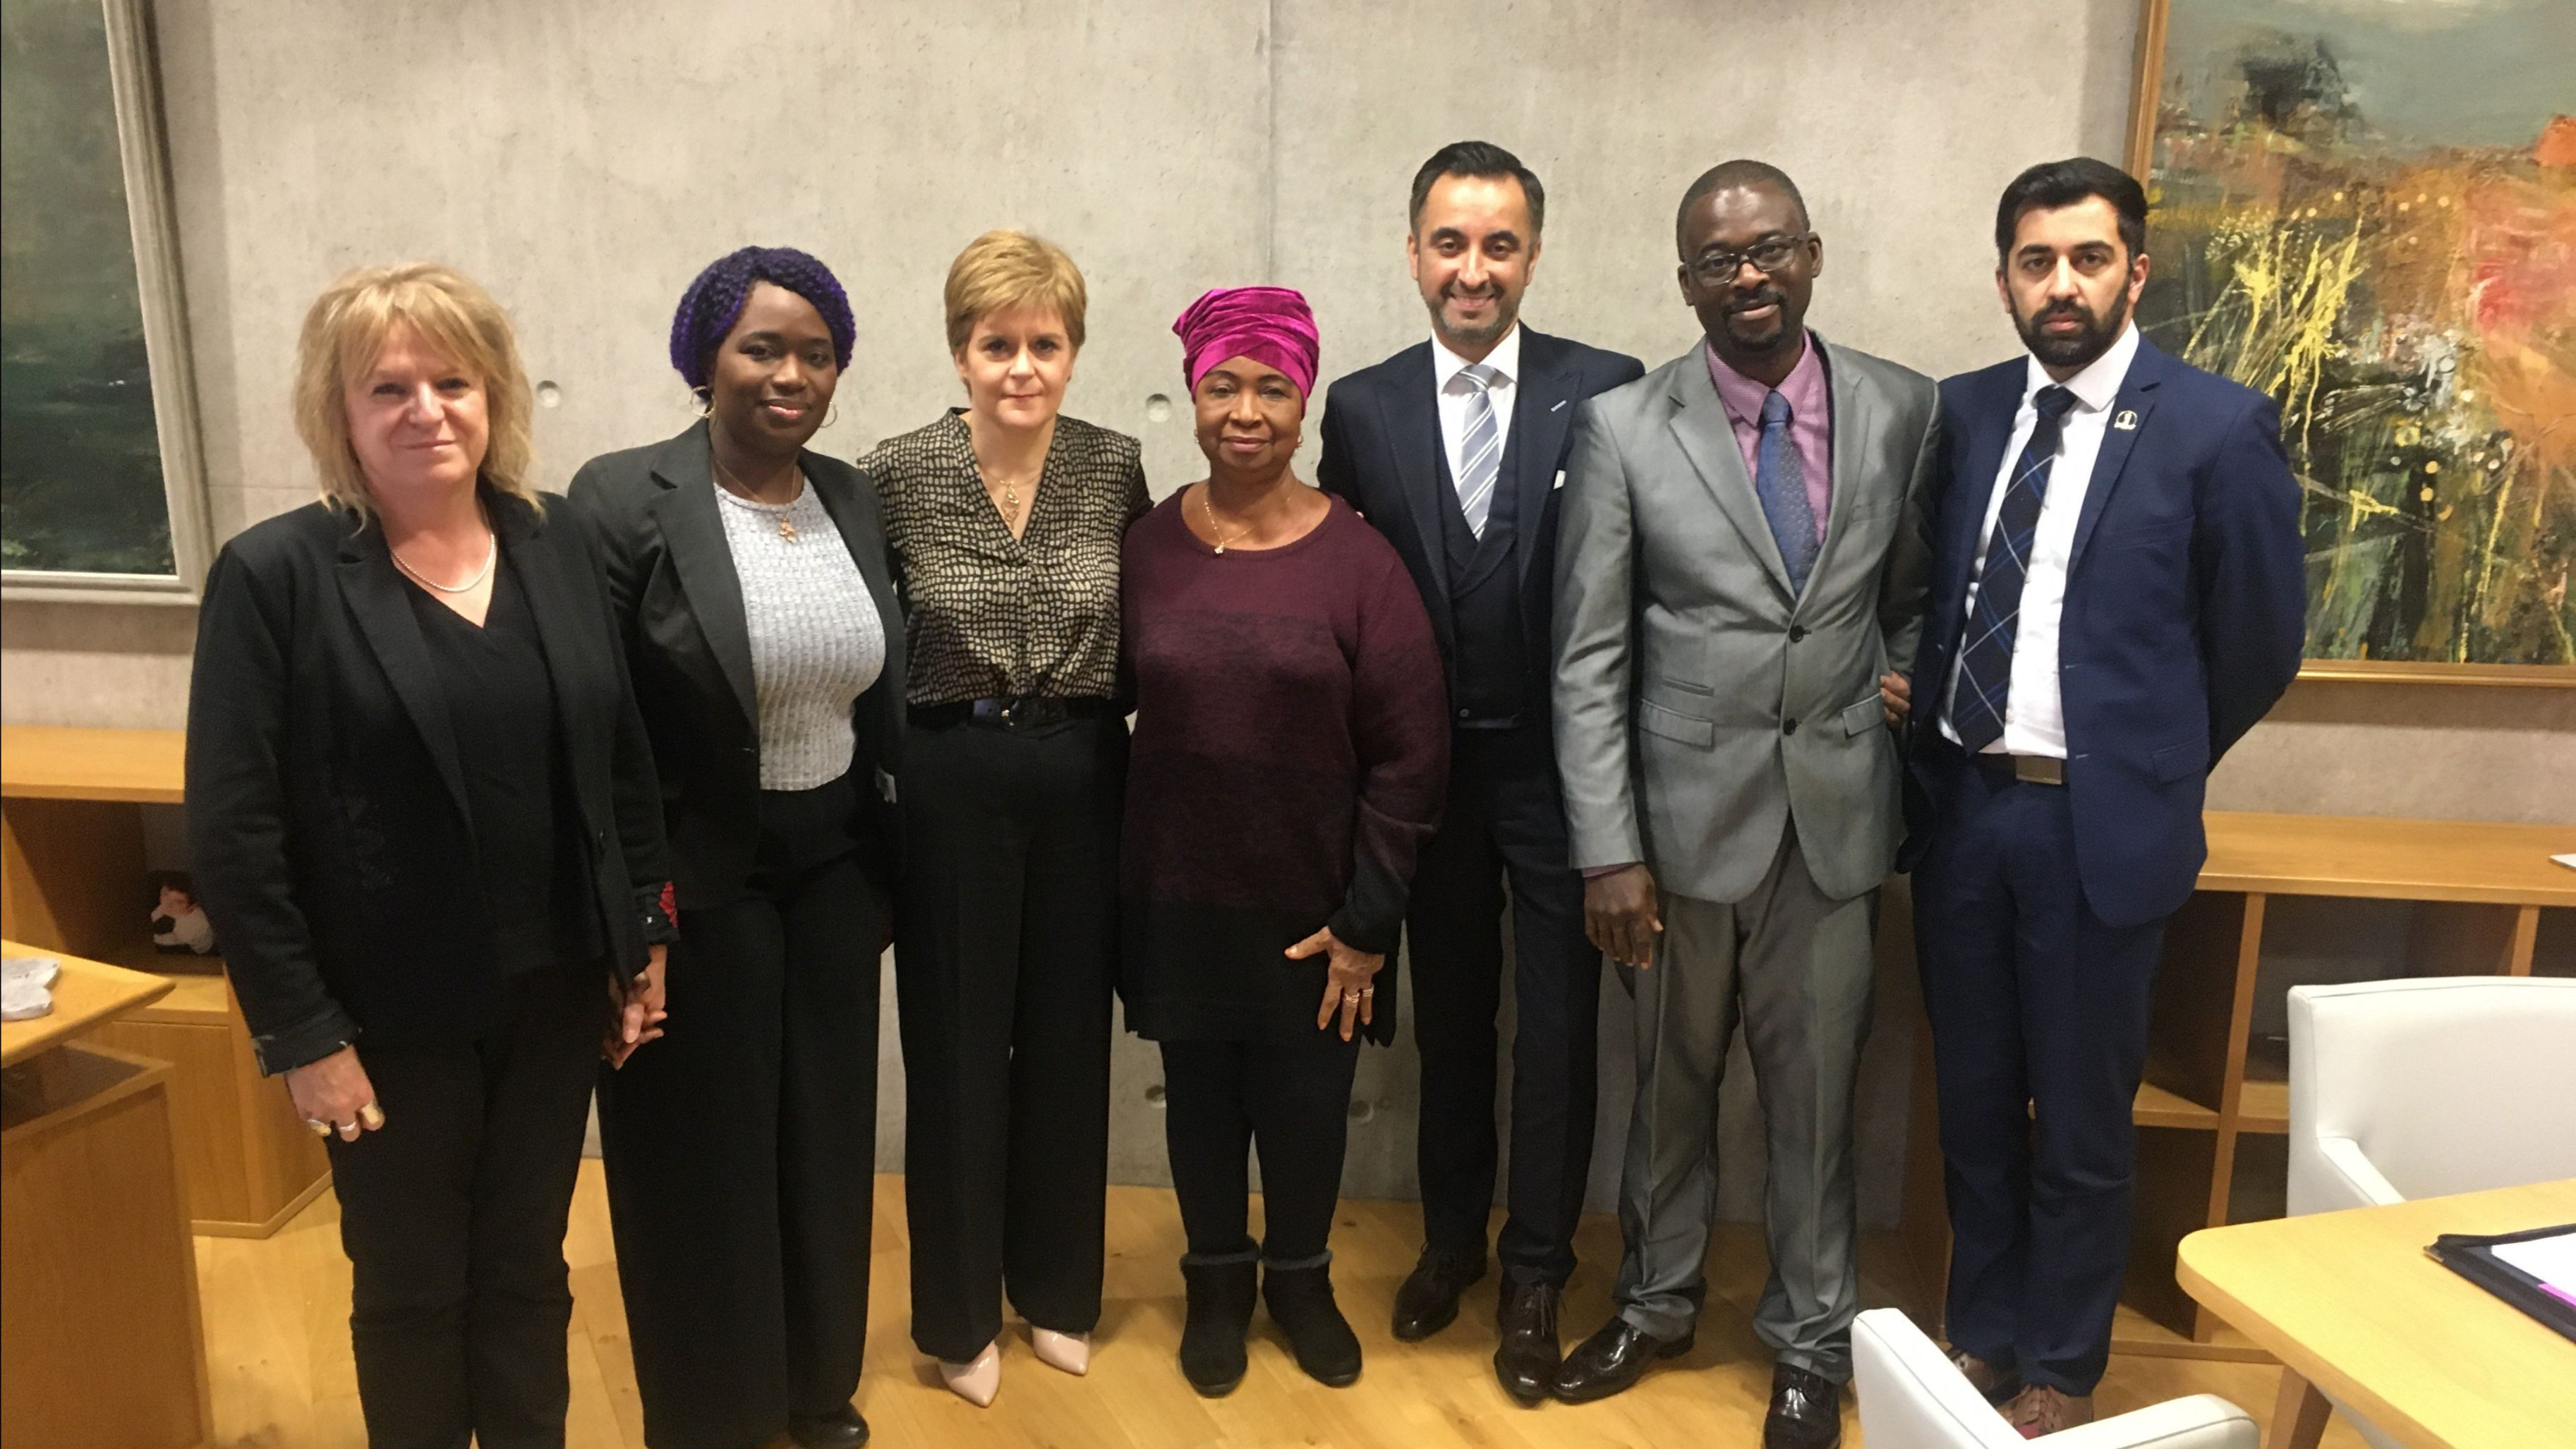 Deborah Coles (INQUEST), Kadi Johnson (sister), Nicola Sturgeon (First Minister), Aminata Bayoh (mother) & Ade Johnson (brother in law), Aamer Anwar (lawyer)